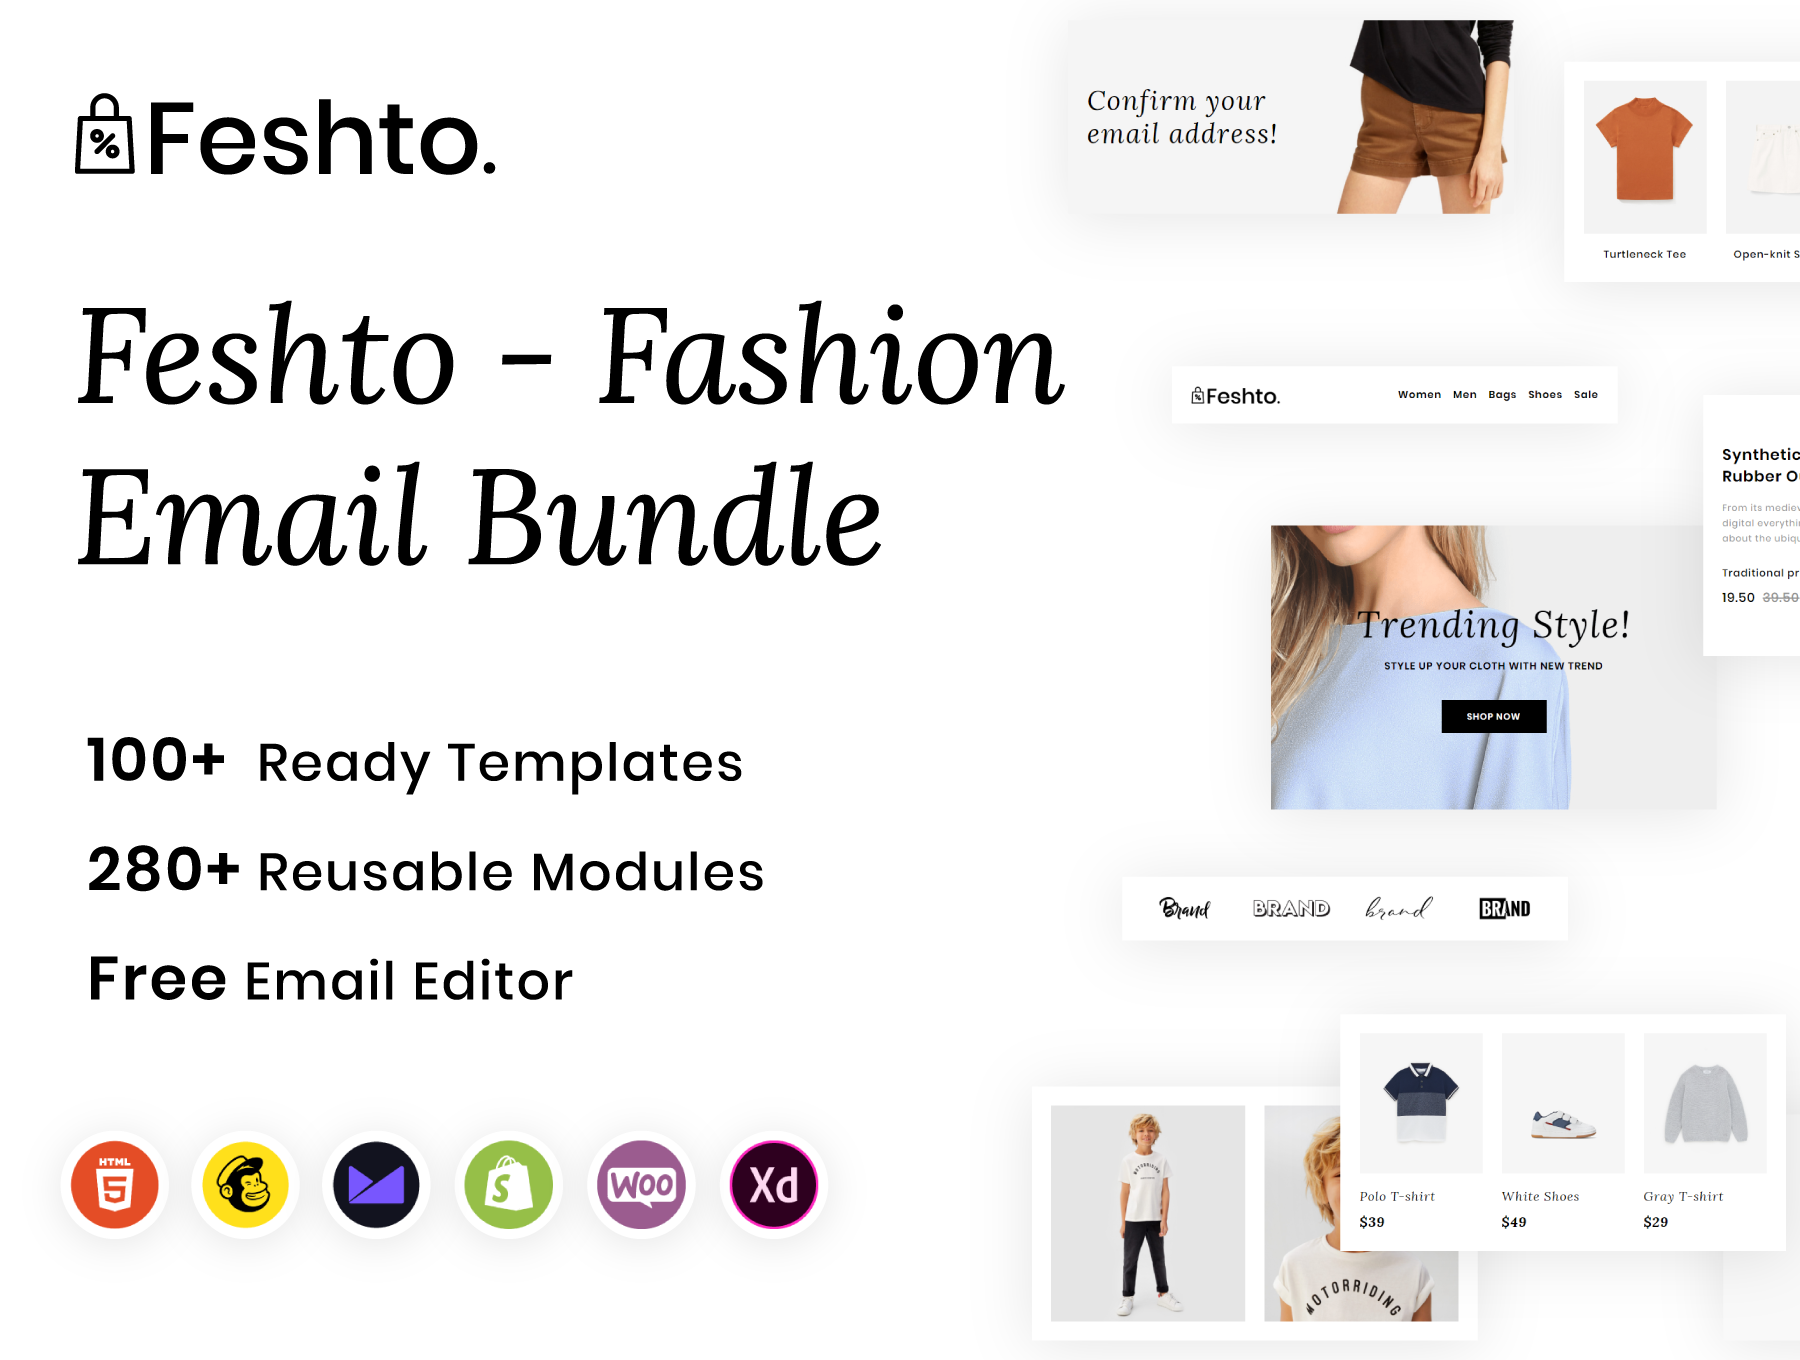 Feshto - Fashion Email Bundle